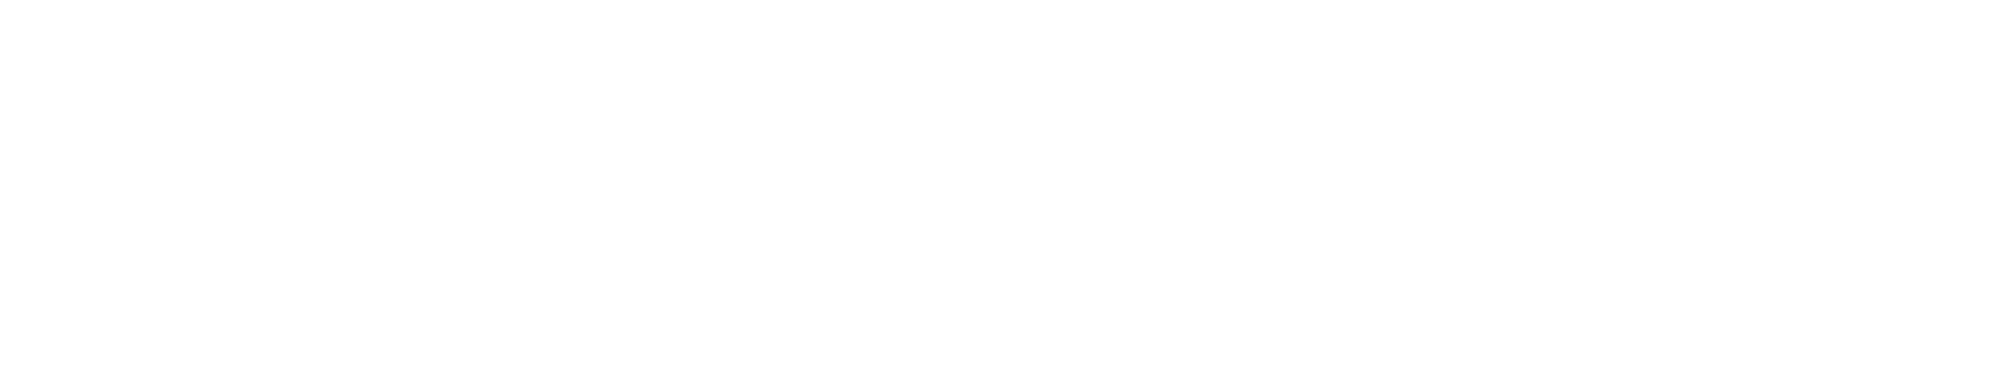 Trident - Fire Training & Consultancy-logo-white.png